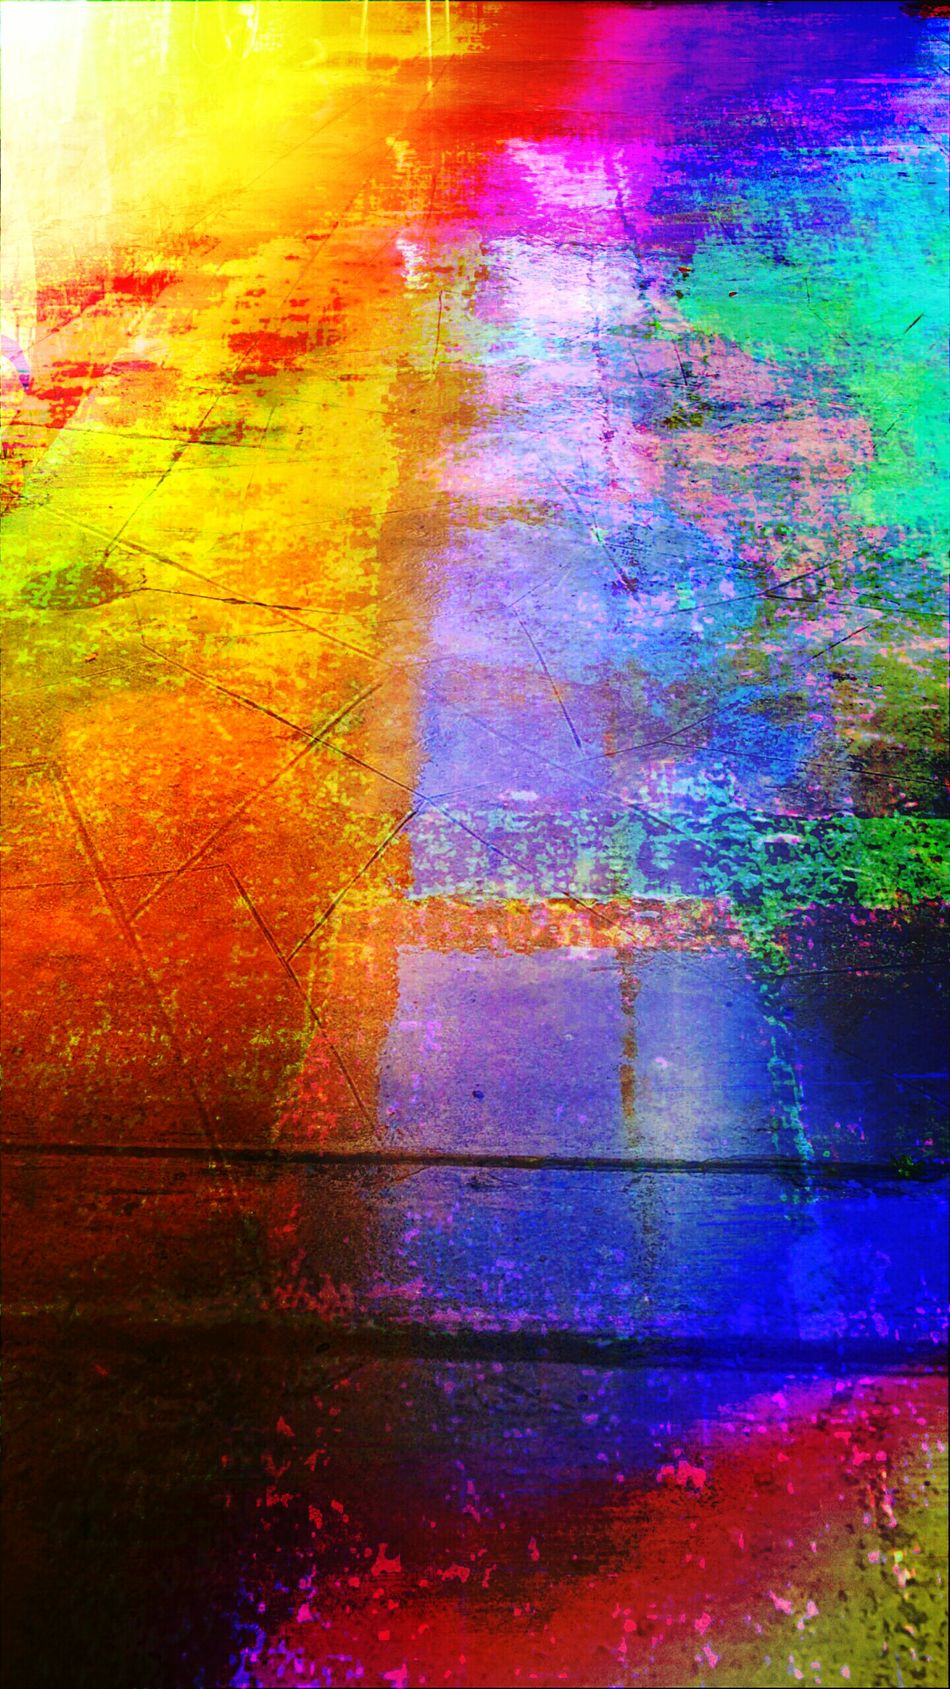 """Sleekpuddlecolors"" Rain Raining Multicolored Multi Colored ManyColors Color Colors Hew Art Photography Artphotography Effect The Magic Mission The Innovator Computer Art Computerart Computerarts Colorful Lighting Fine Art Photography Pivotal Ideas Colour Of Life Adapted To The City"